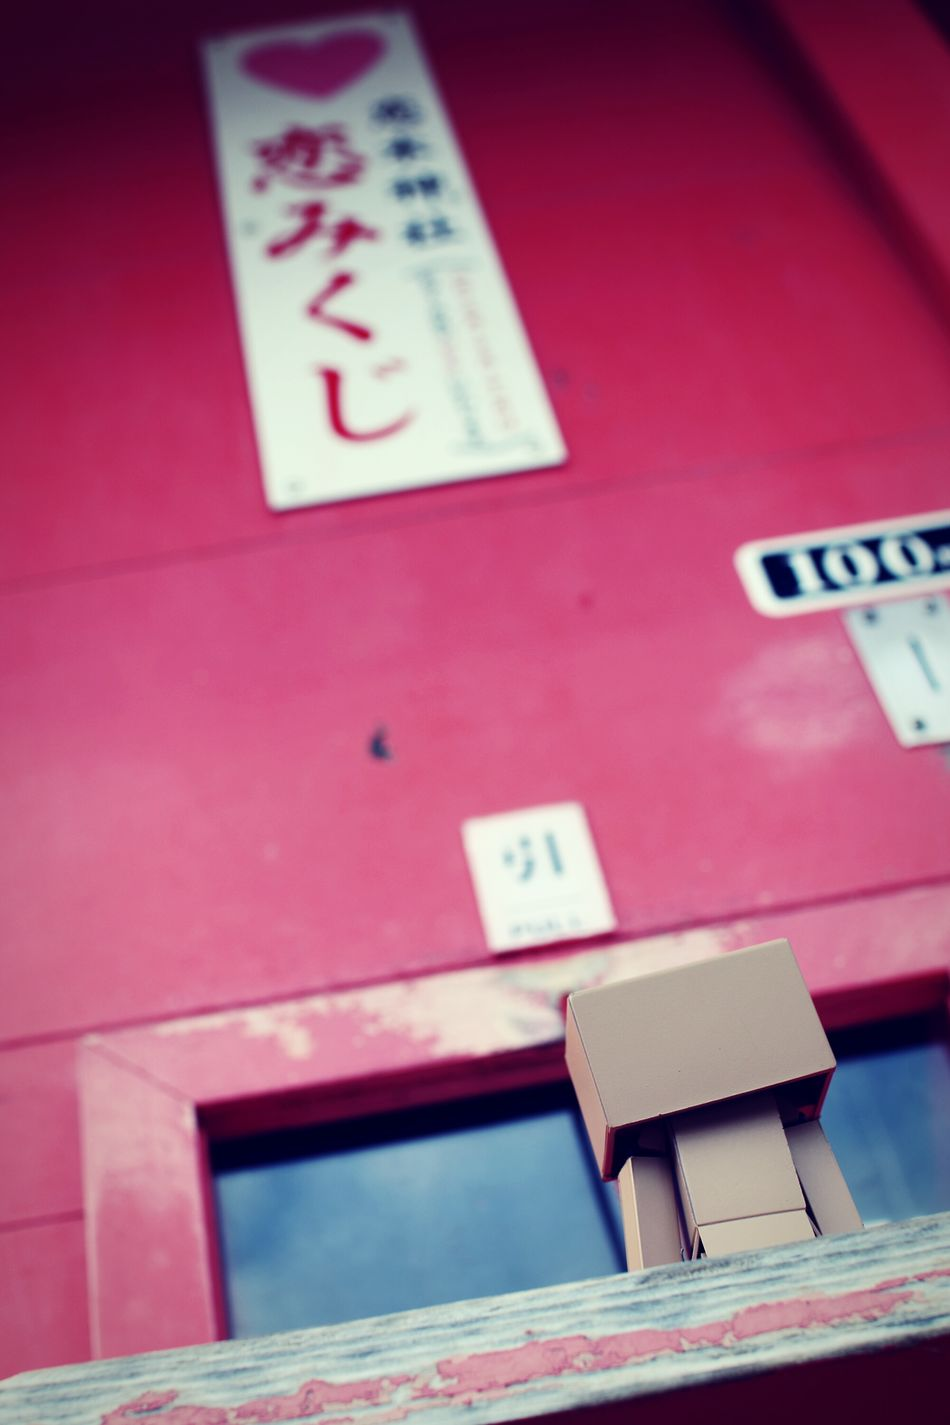 おみくじ引き忘れた。 Danbo EyeEm Gallery Japanese Shrine Omikuji Shallow Focus Hello World